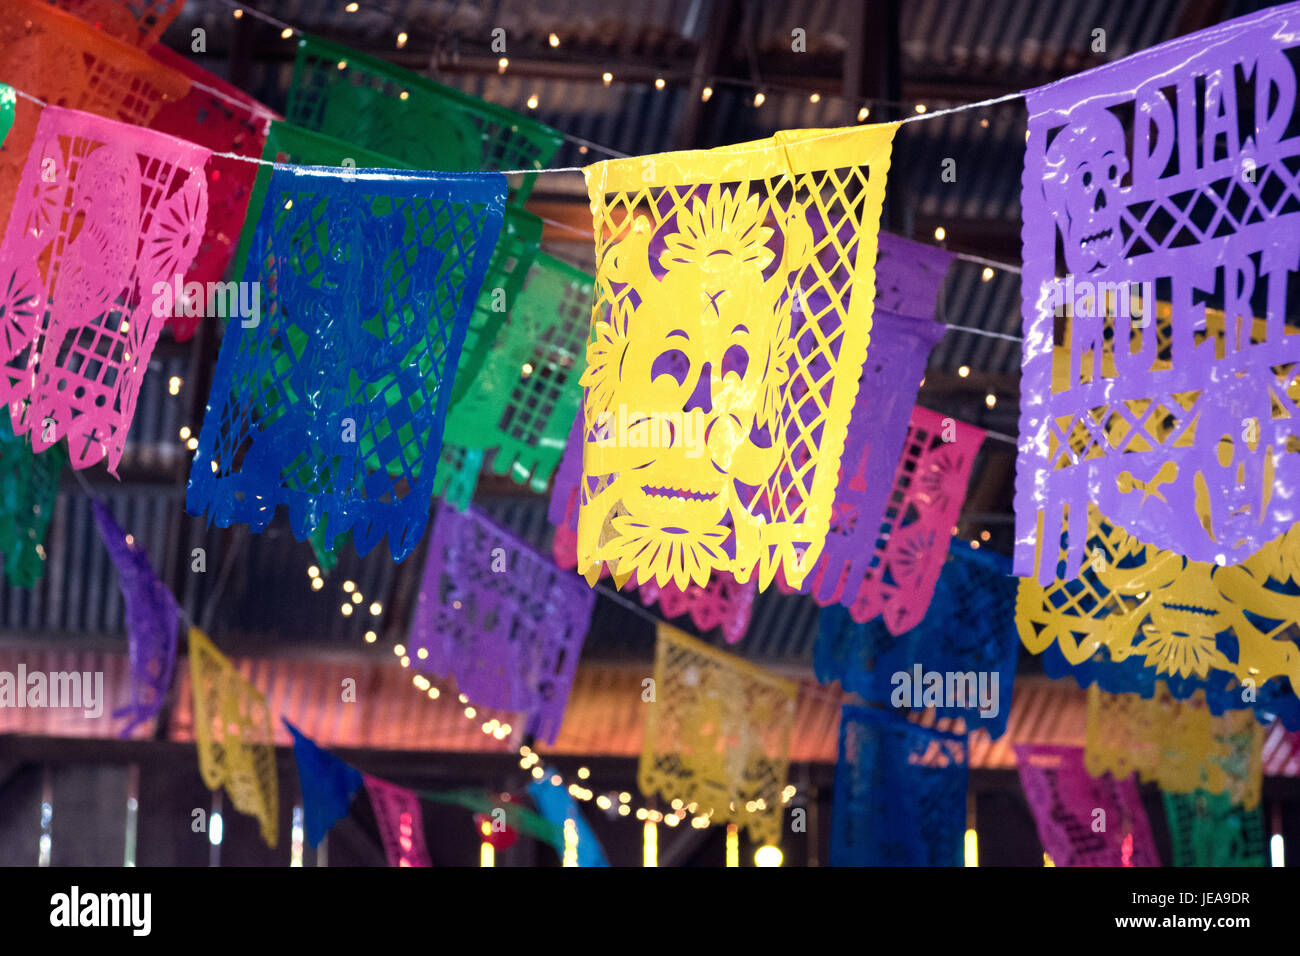 Dia De Los Muertos Flags At Rustic Mexican Wedding In Barn